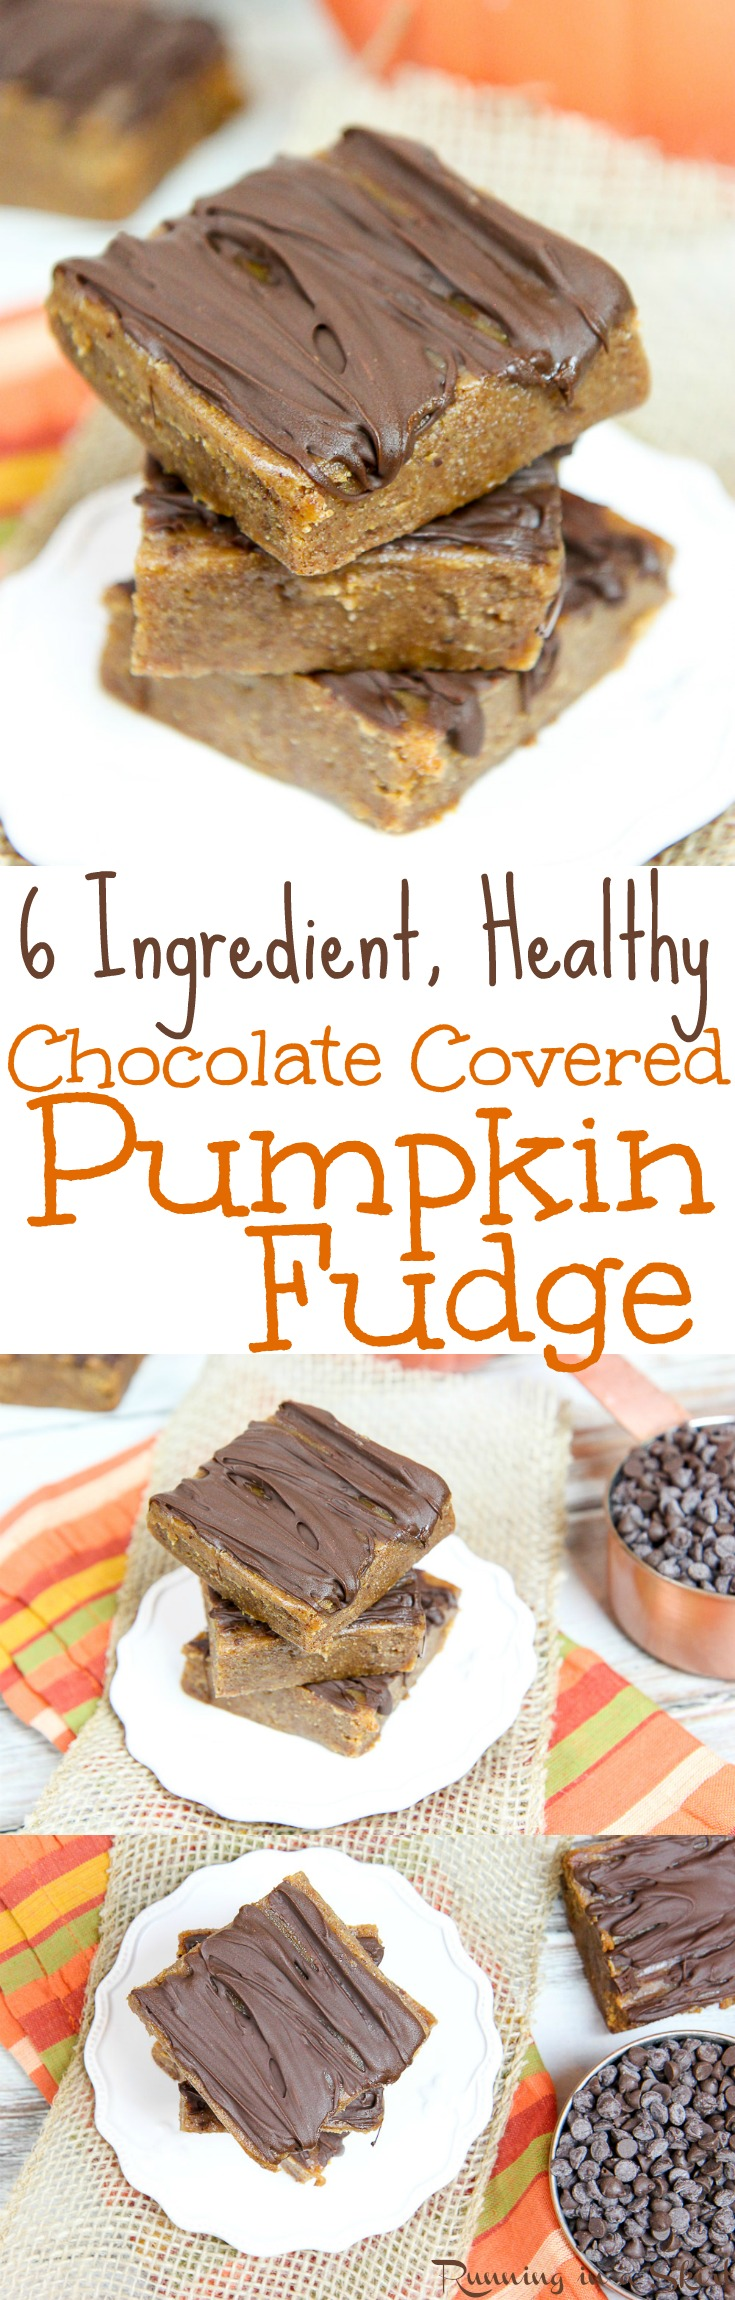 6 Ingredient Chocolate Covered Healthy Pumpkin Fudge recipe. An easy, no cook, no bake, creamy simple fudge. Uses maple syrup, nut butter and coconut oil.  Perfect for Thanksgiving or the holidays.  Gluten Free, Vegetarian & Vegan / Running in a Skirt via @juliewunder